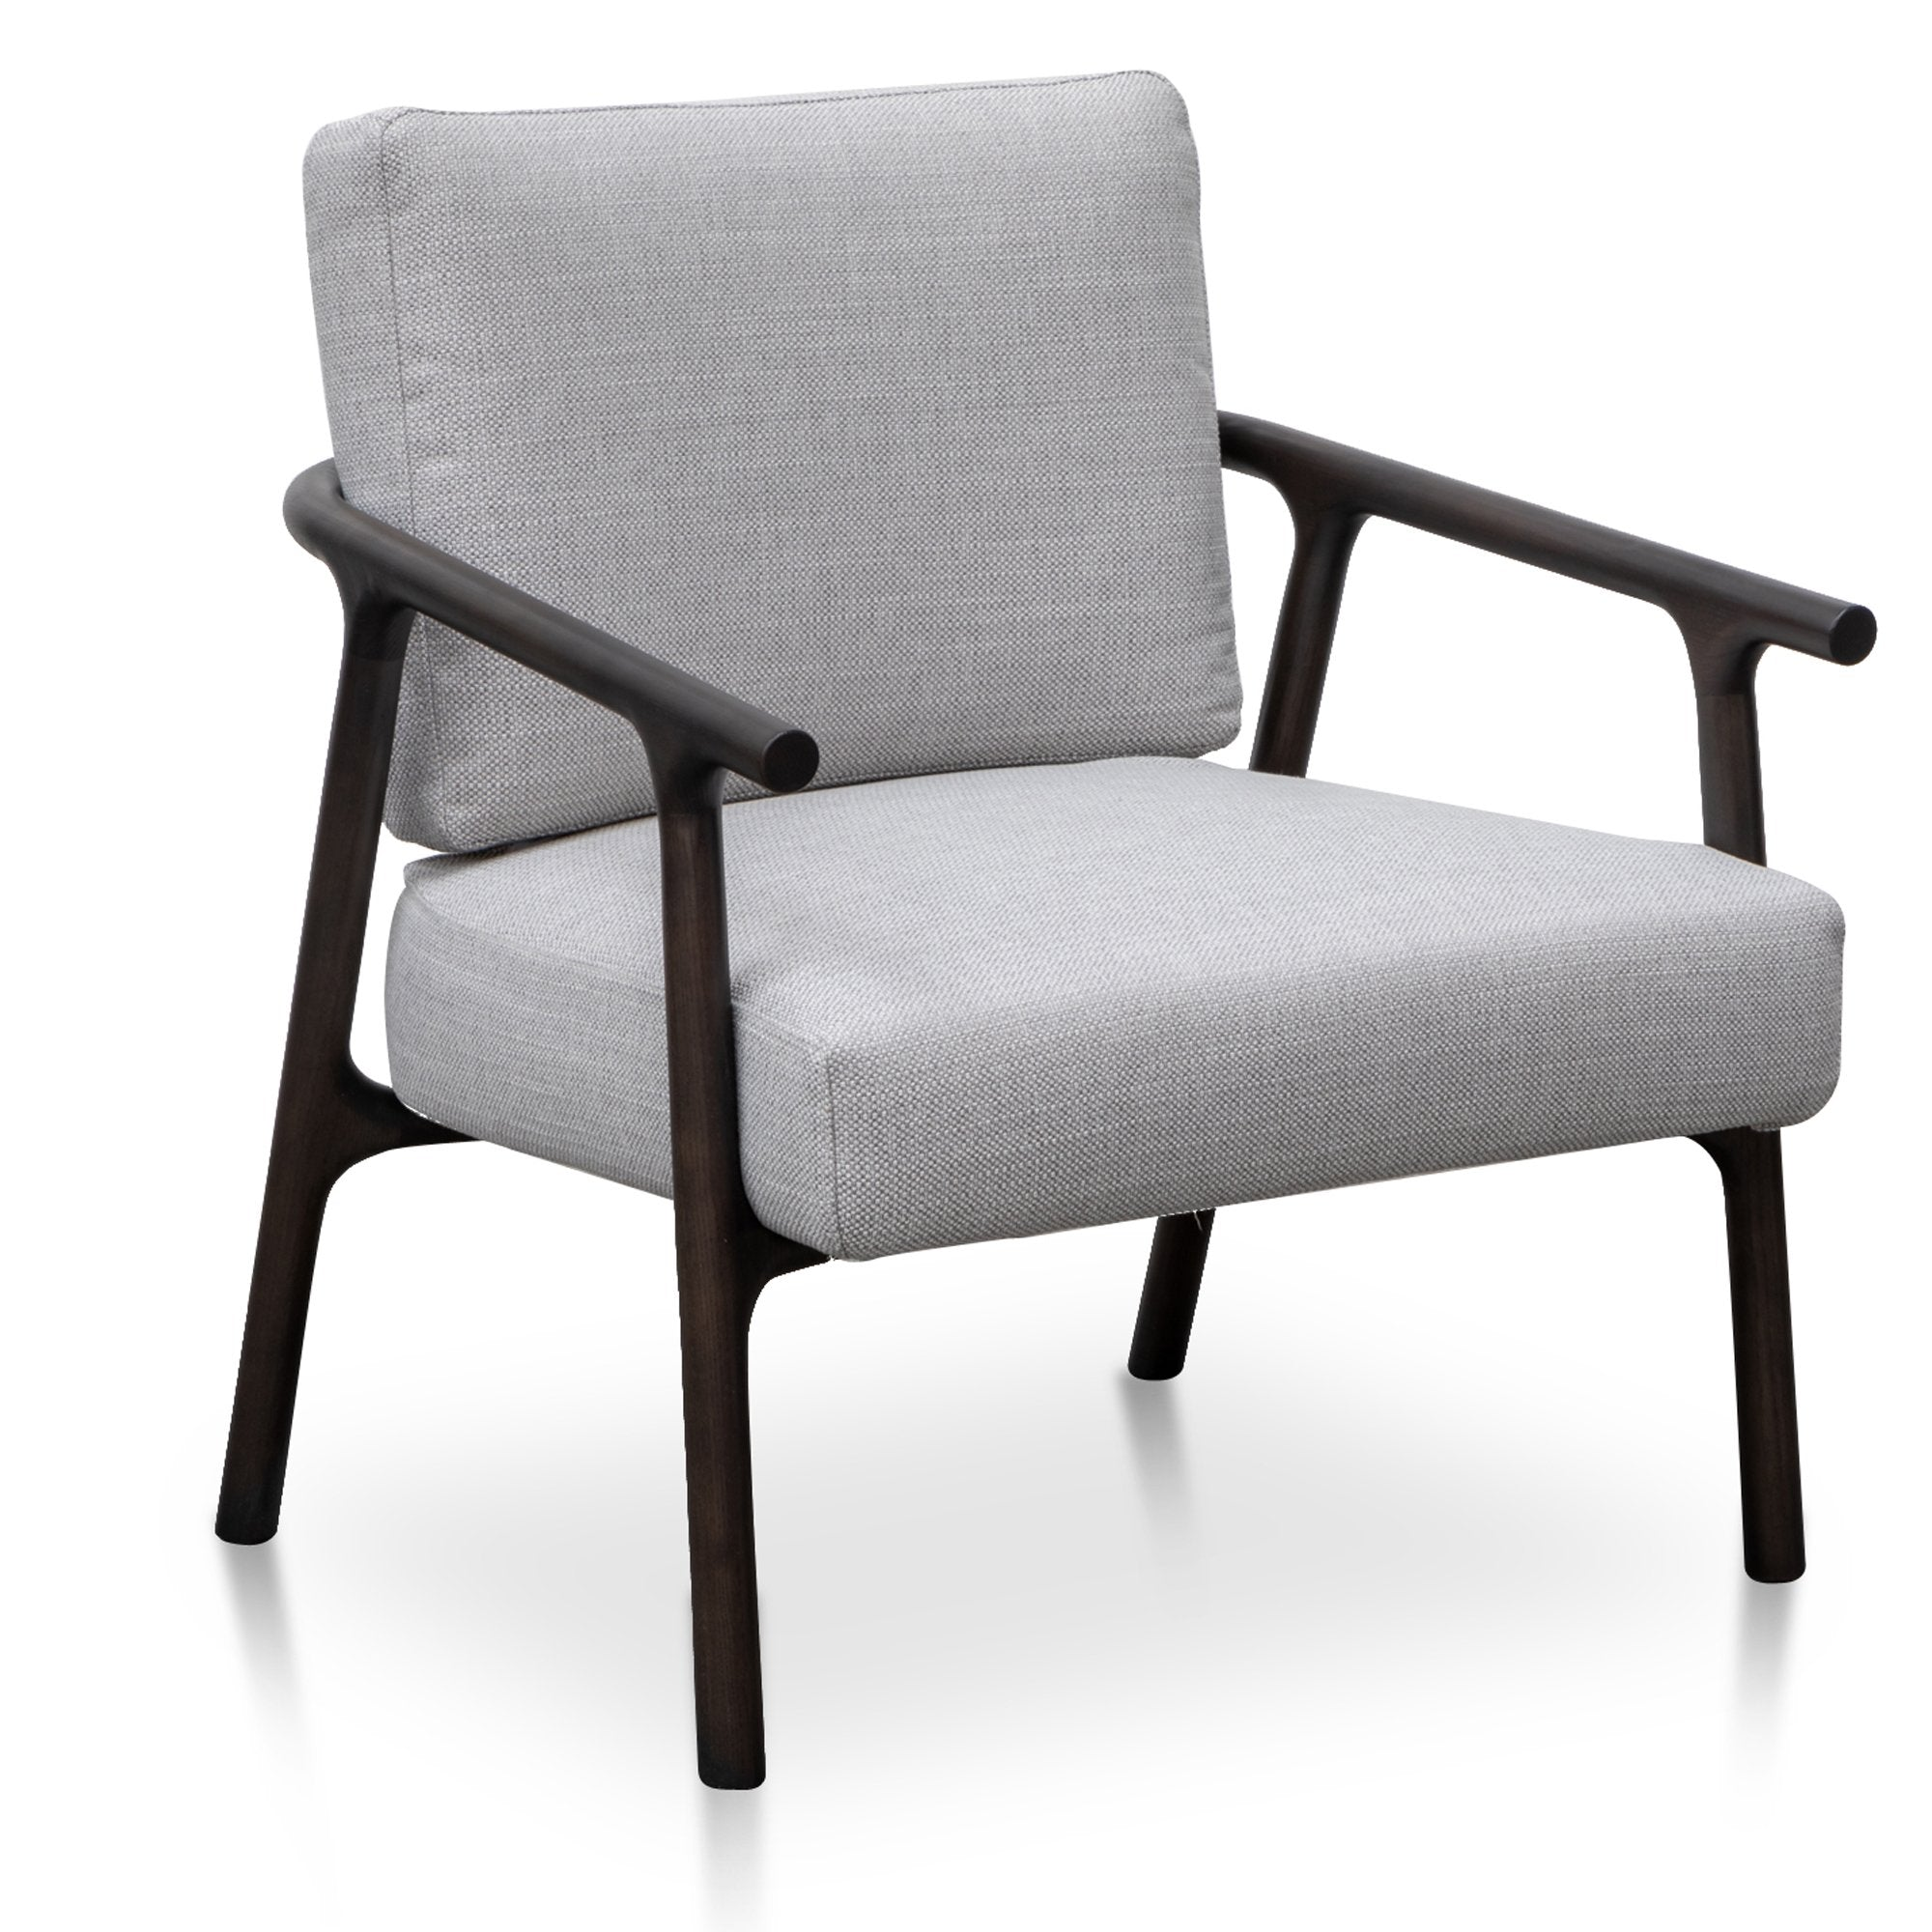 Reeves Fabric Armchair - Light Texture Grey | Interior Secrets